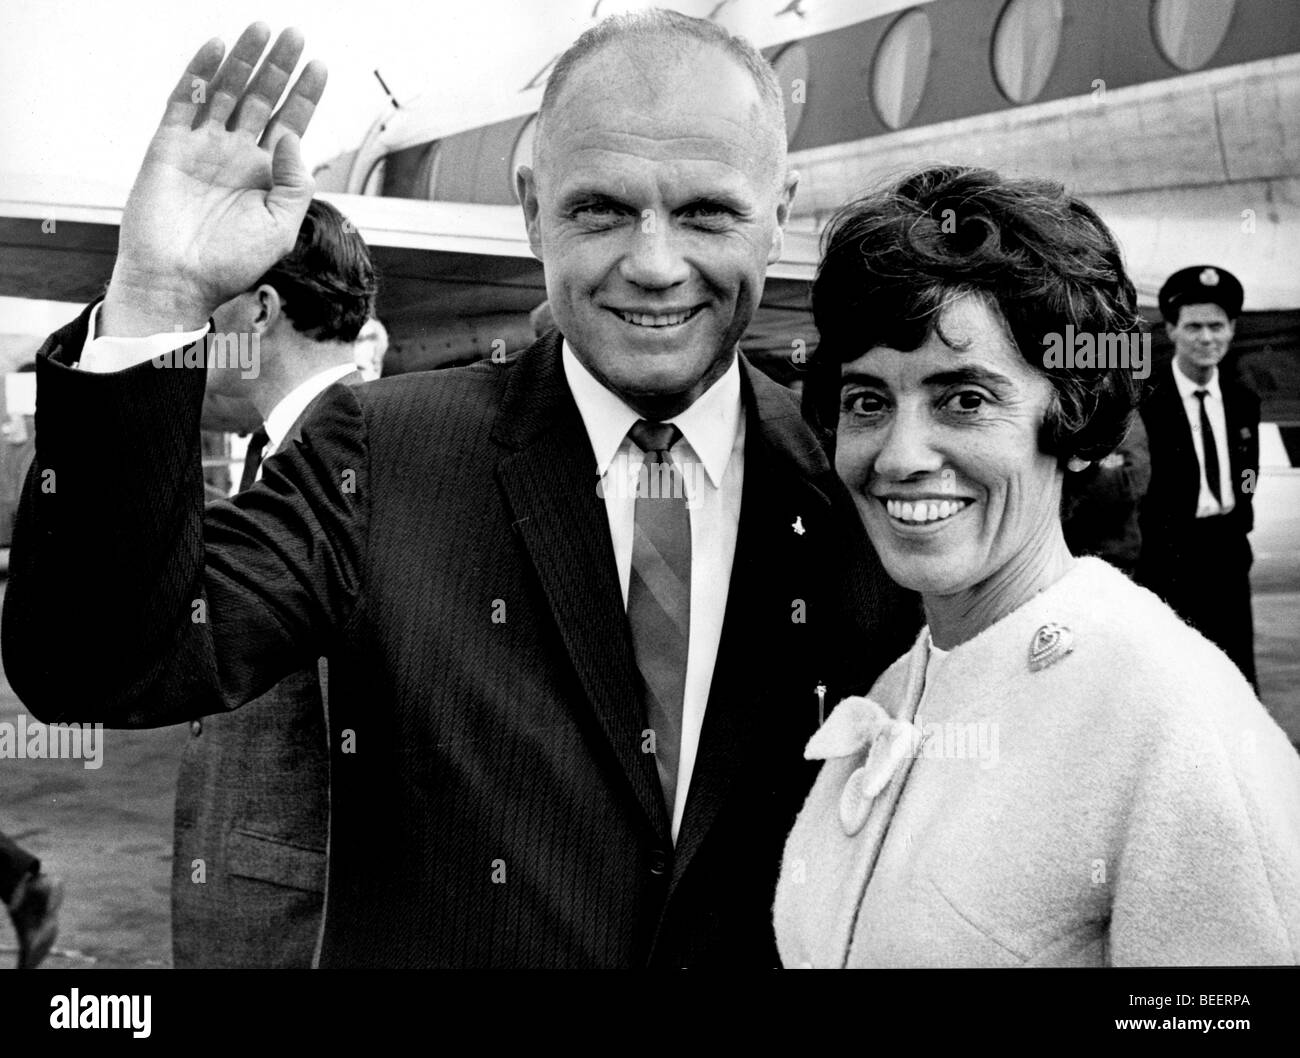 COL. JOHN GLENN and his wife ANNIE when they finally landed at LONDON AIRPORT - Stock Image